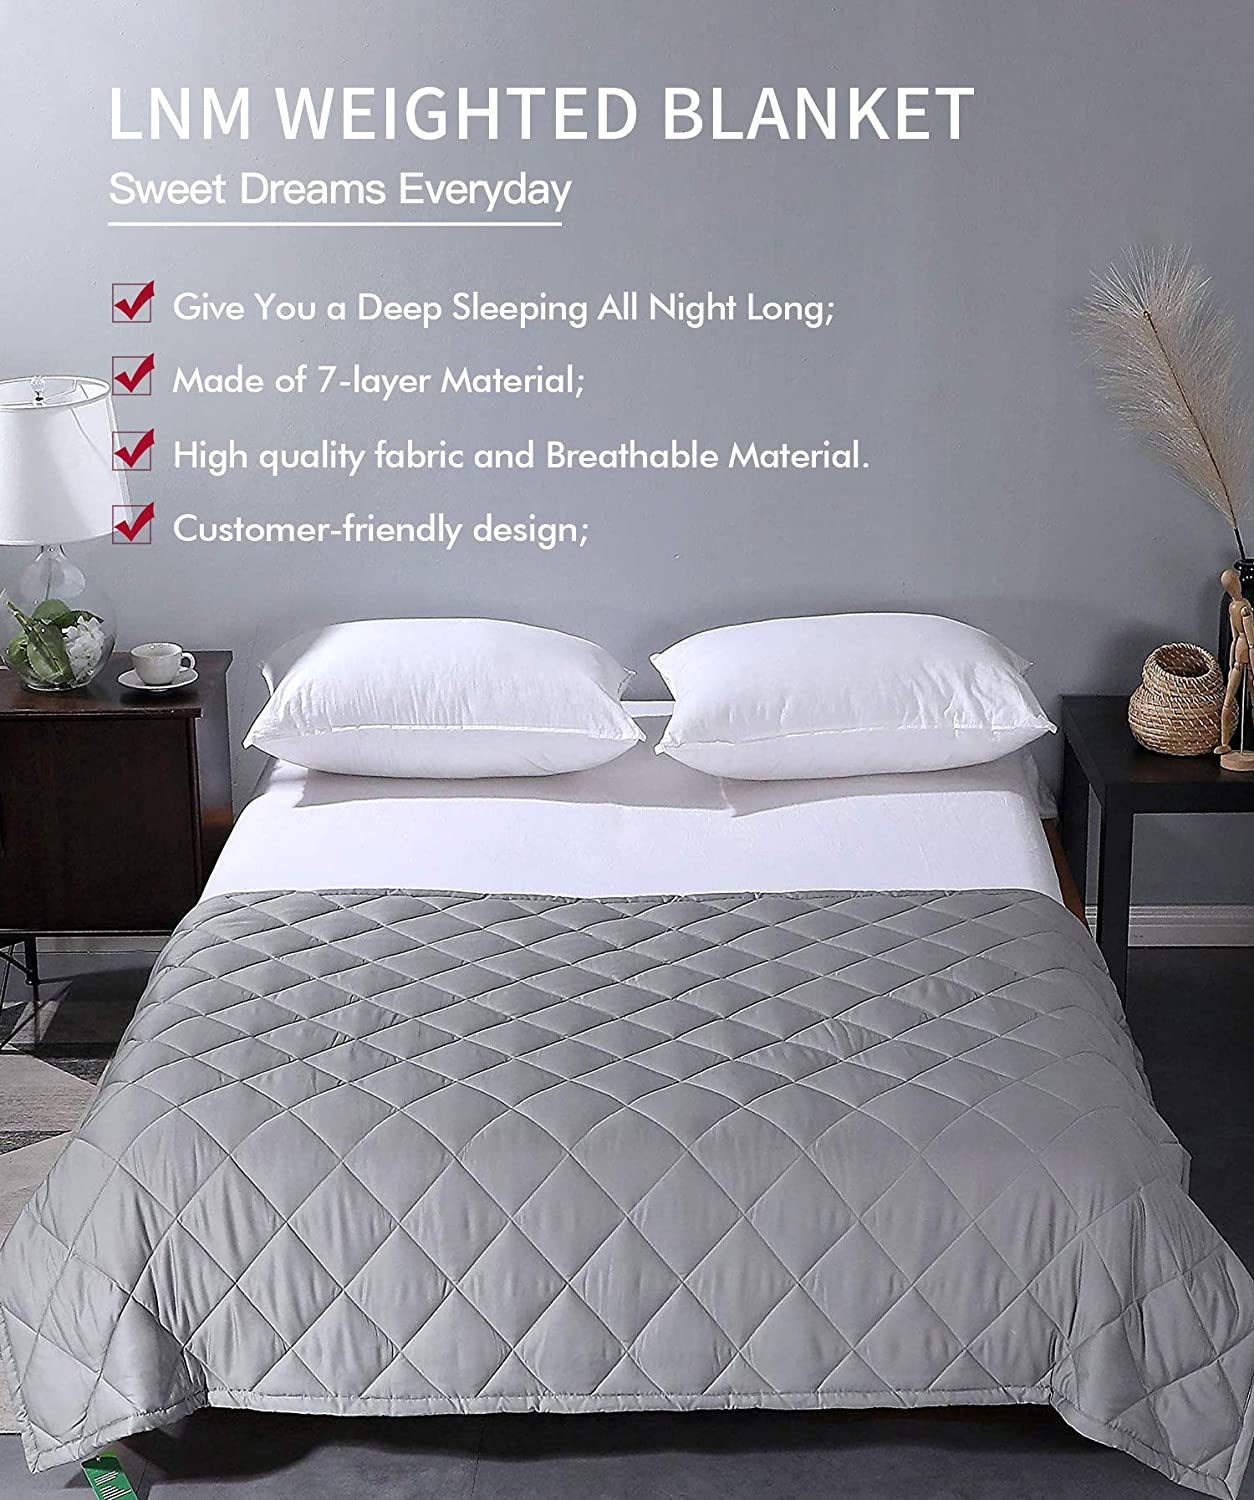 LNM Weighted Blanket Spring Summer Soft Cotton Cooling Heavy Throw with Cotton Glass Beads for Women Men Youth 60x80 15lbs for 120-180 lbs Grey for Pressure Insomniac